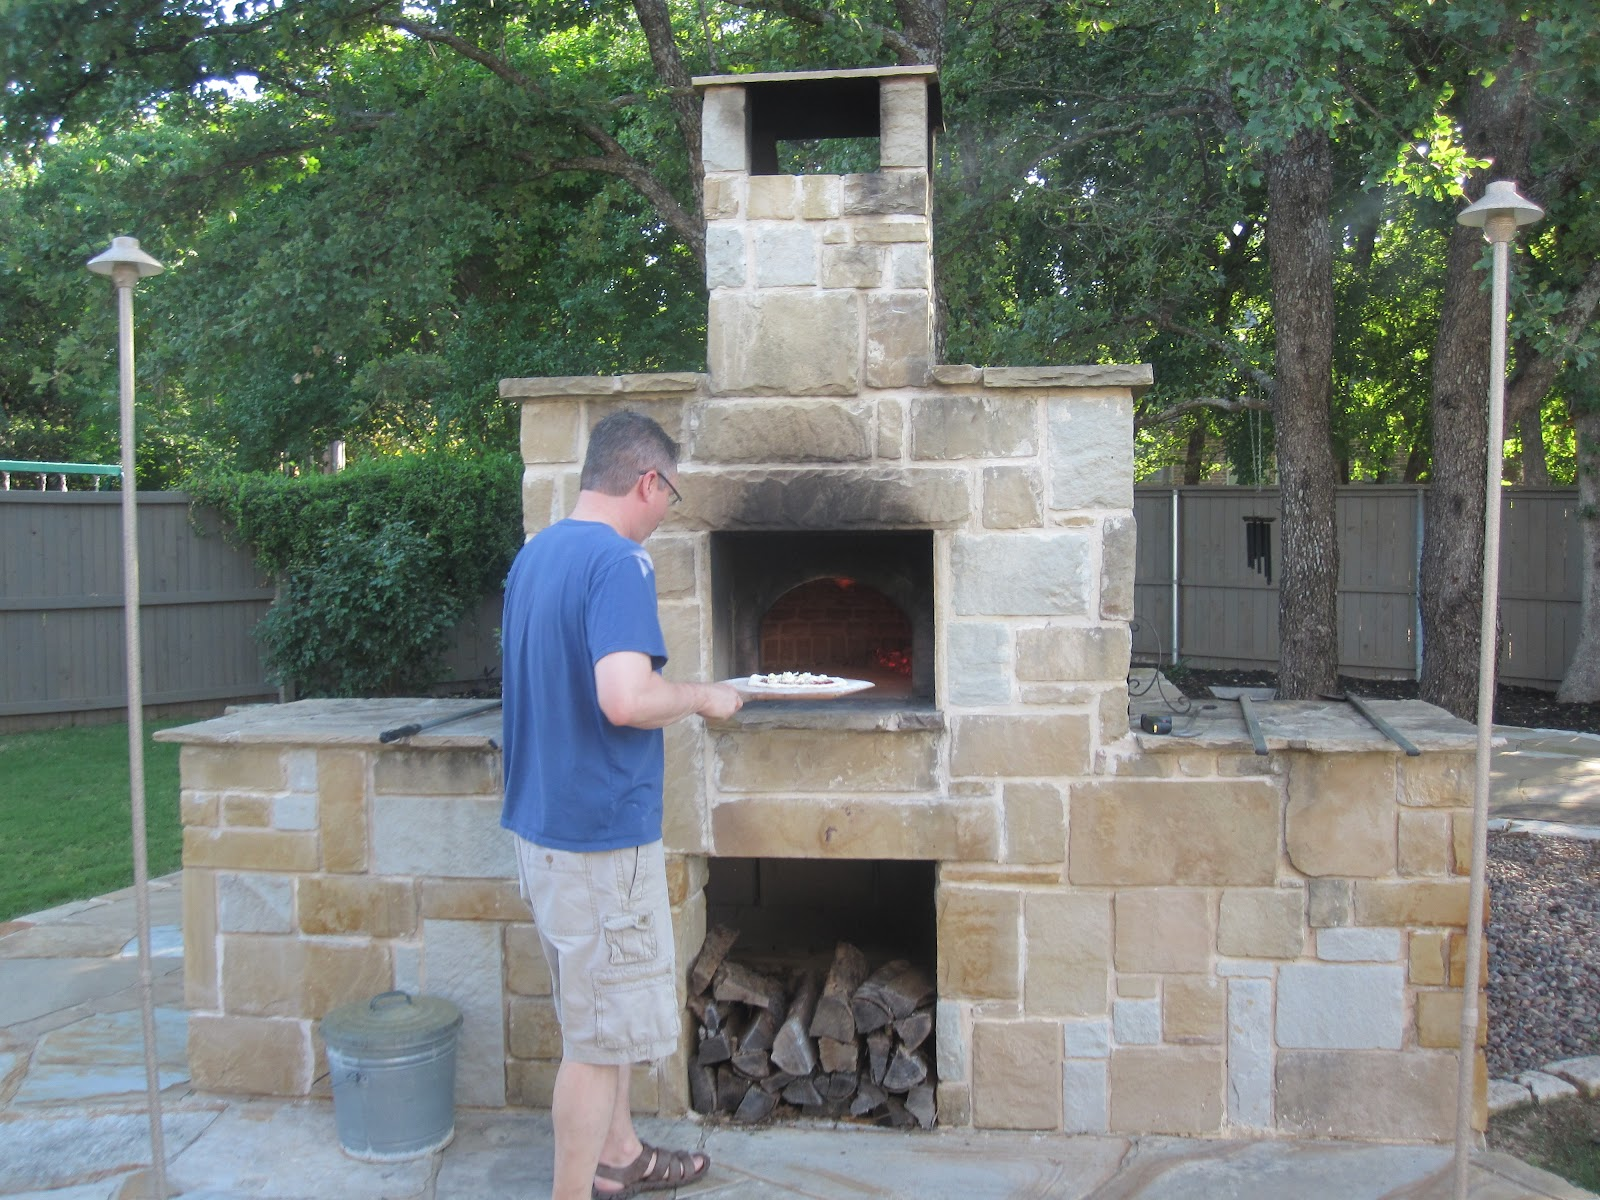 DIY Outdoor Pizza Ovens WoodBurning